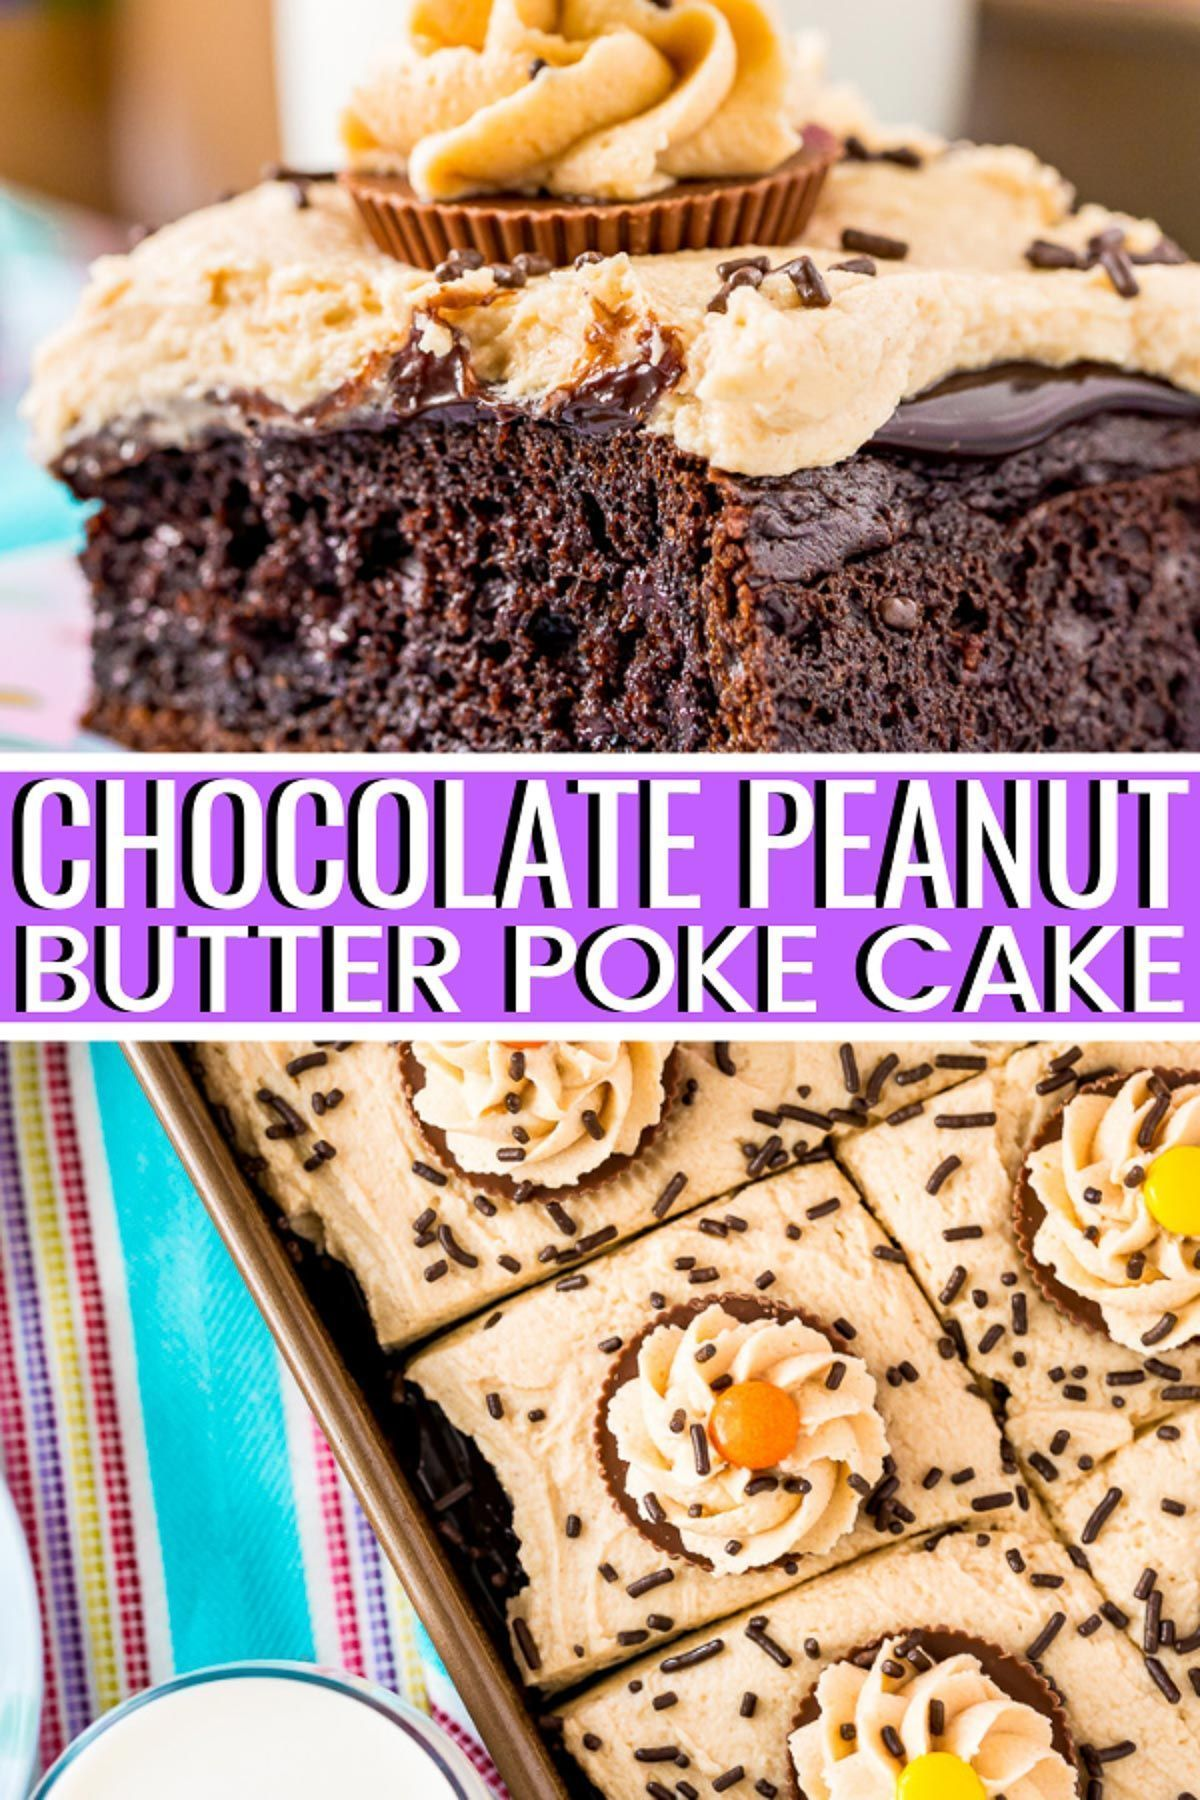 Chocolate Peanut Butter Poke Cake #chocolatepeanutbutterpokecake Chocolate Peanut Butter Poke Cake is an easy and decadent sheet cake recipe with rich chocolate and salty peanut butter flavor!  Chocolate Peanut Butter Cake begins with an adapted box mix recipe. Then, it's topped with hot fudge or Chocolate Ganache and Peanut Butter Frosting. #chocolatepeanutbutterpokecake Chocolate Peanut Butter Poke Cake #chocolatepeanutbutterpokecake Chocolate Peanut Butter Poke Cake is an easy and decadent #chocolatepeanutbutterpokecake